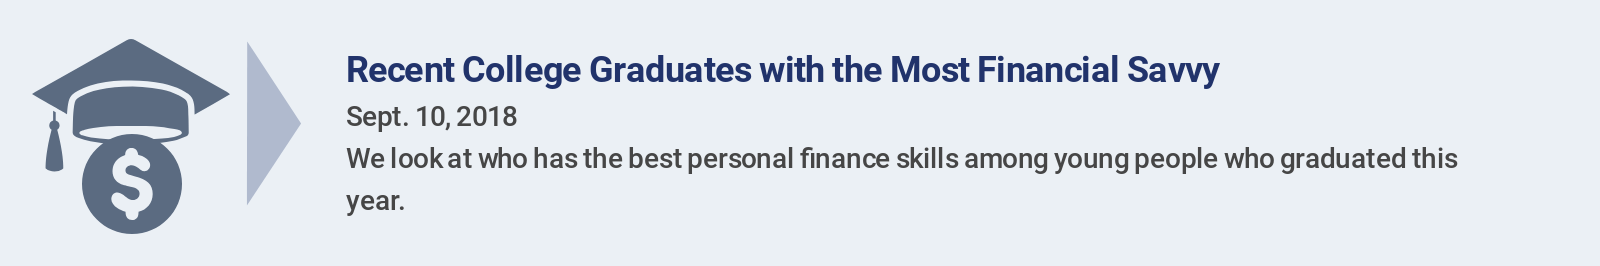 Recent College Graduates with the Most Financial Savvy